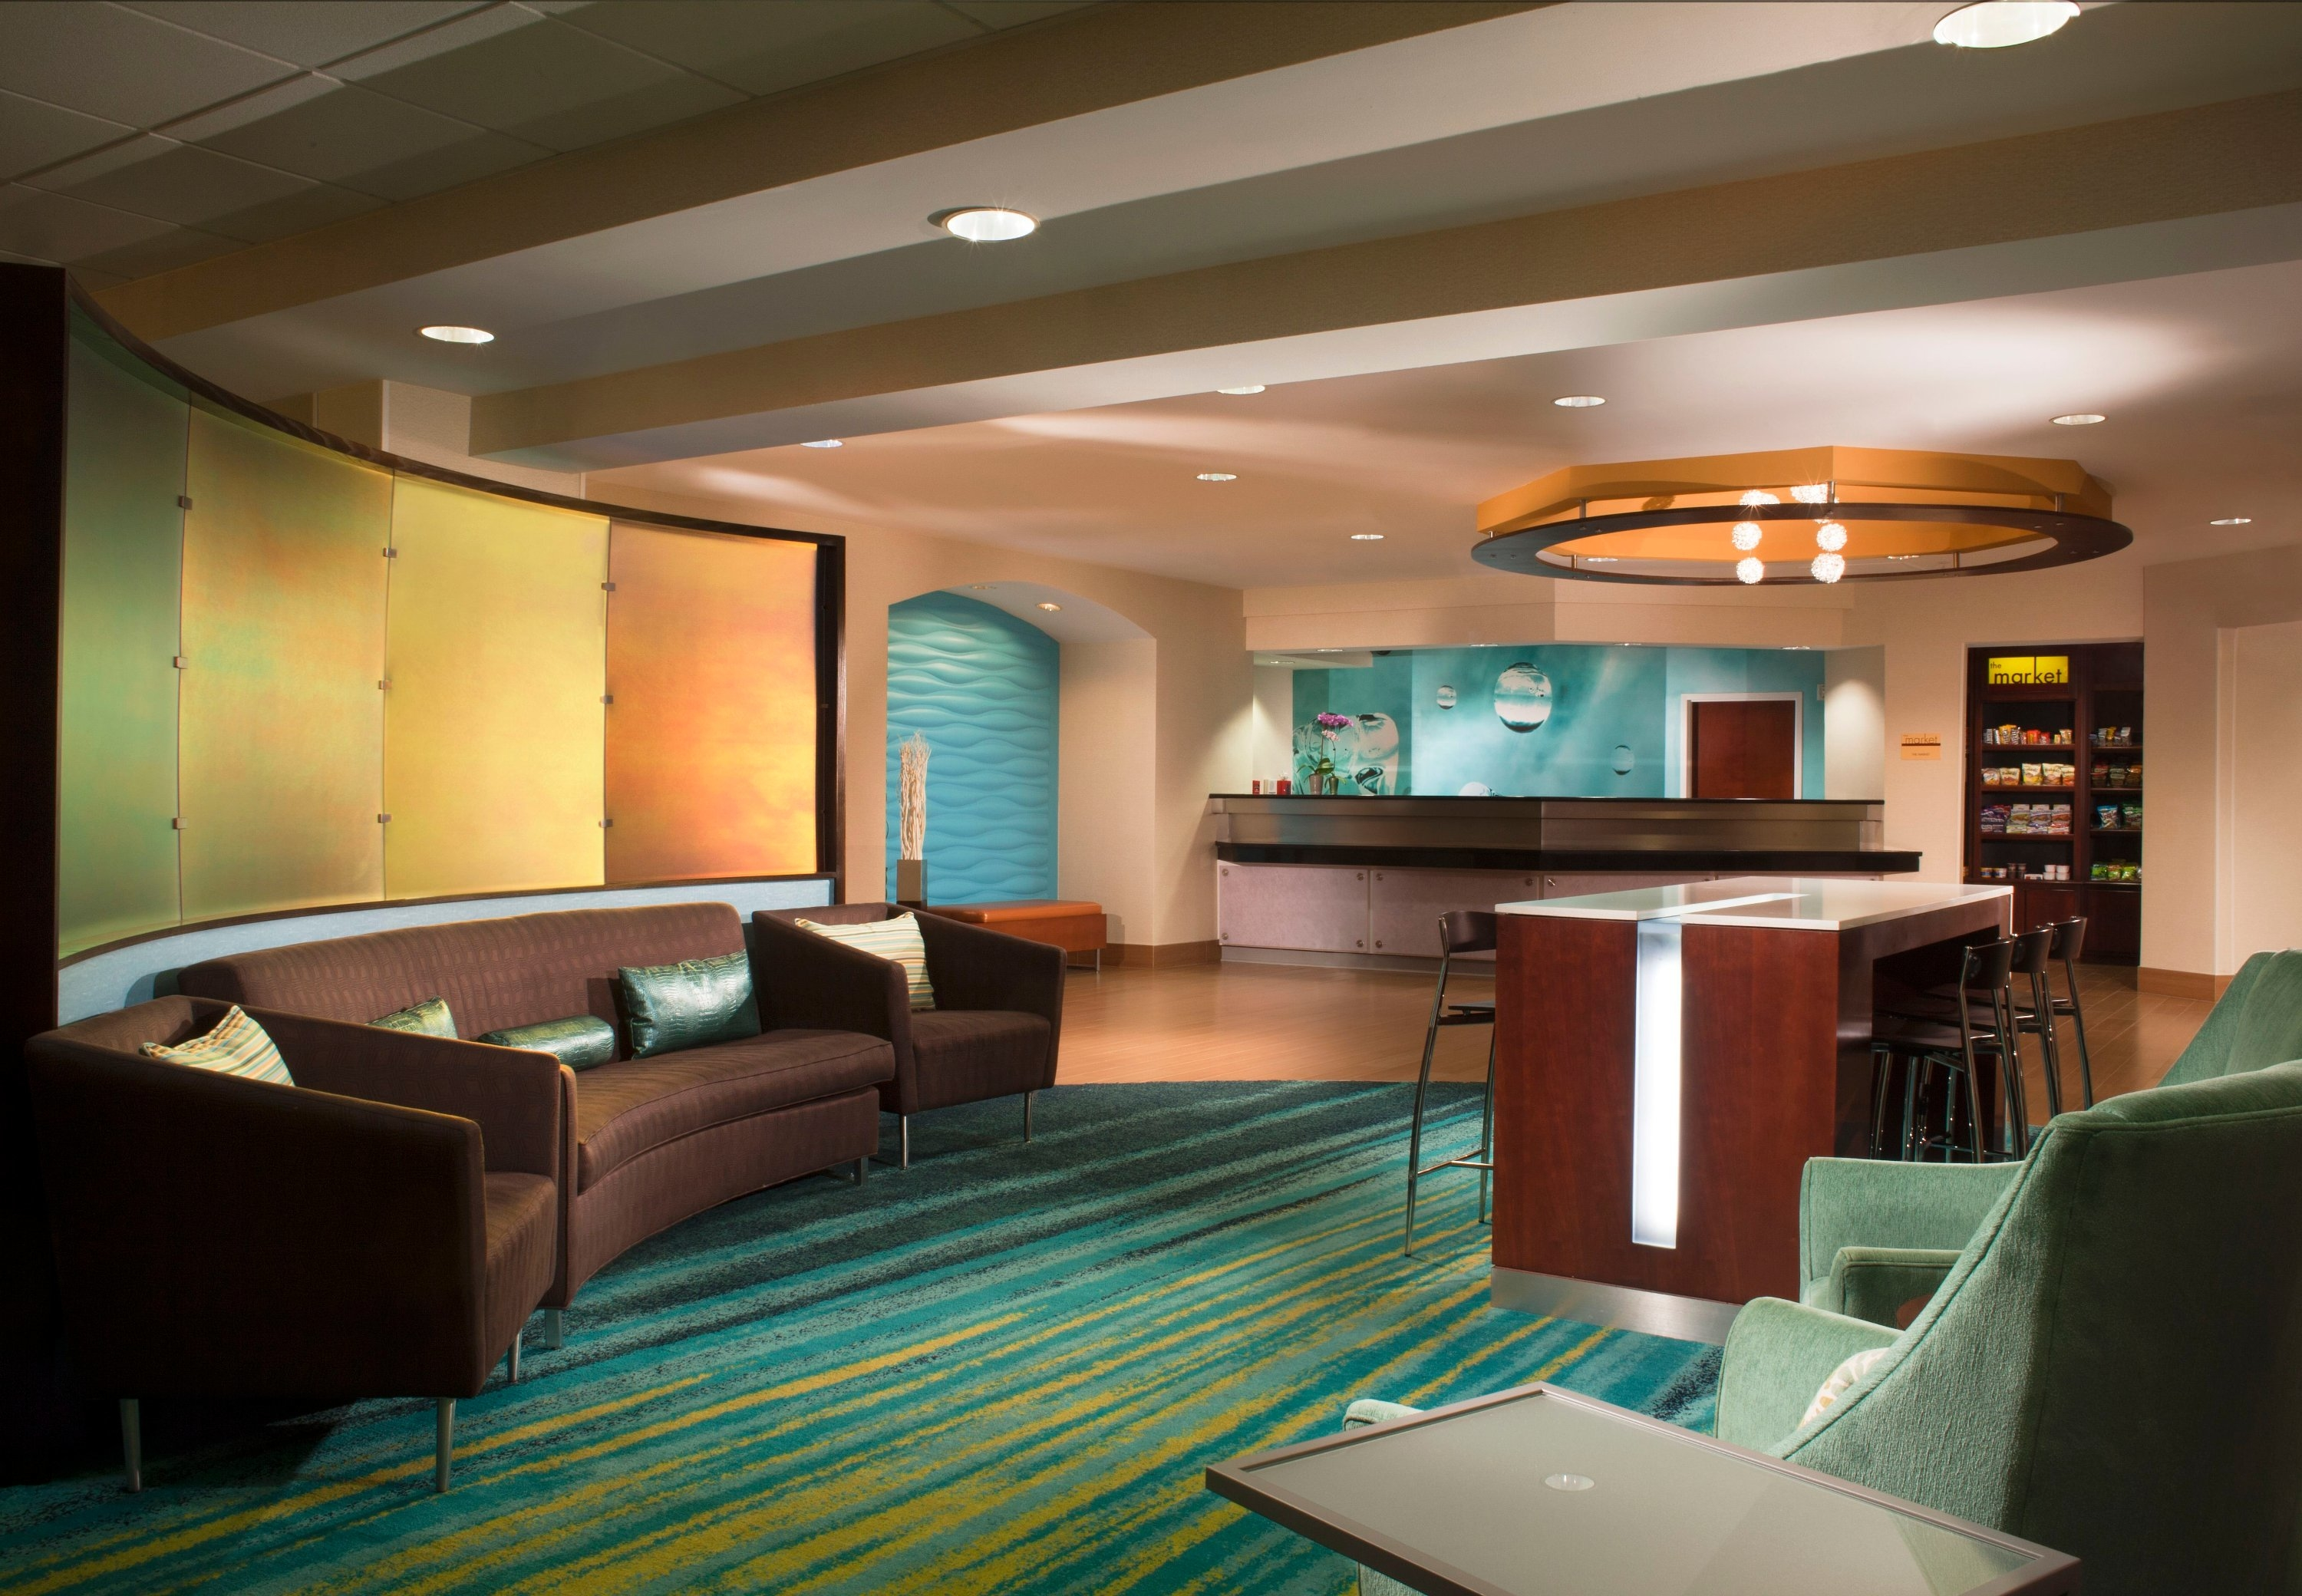 SpringHill Suites by Marriott Atlanta Buford/Mall of Georgia image 1